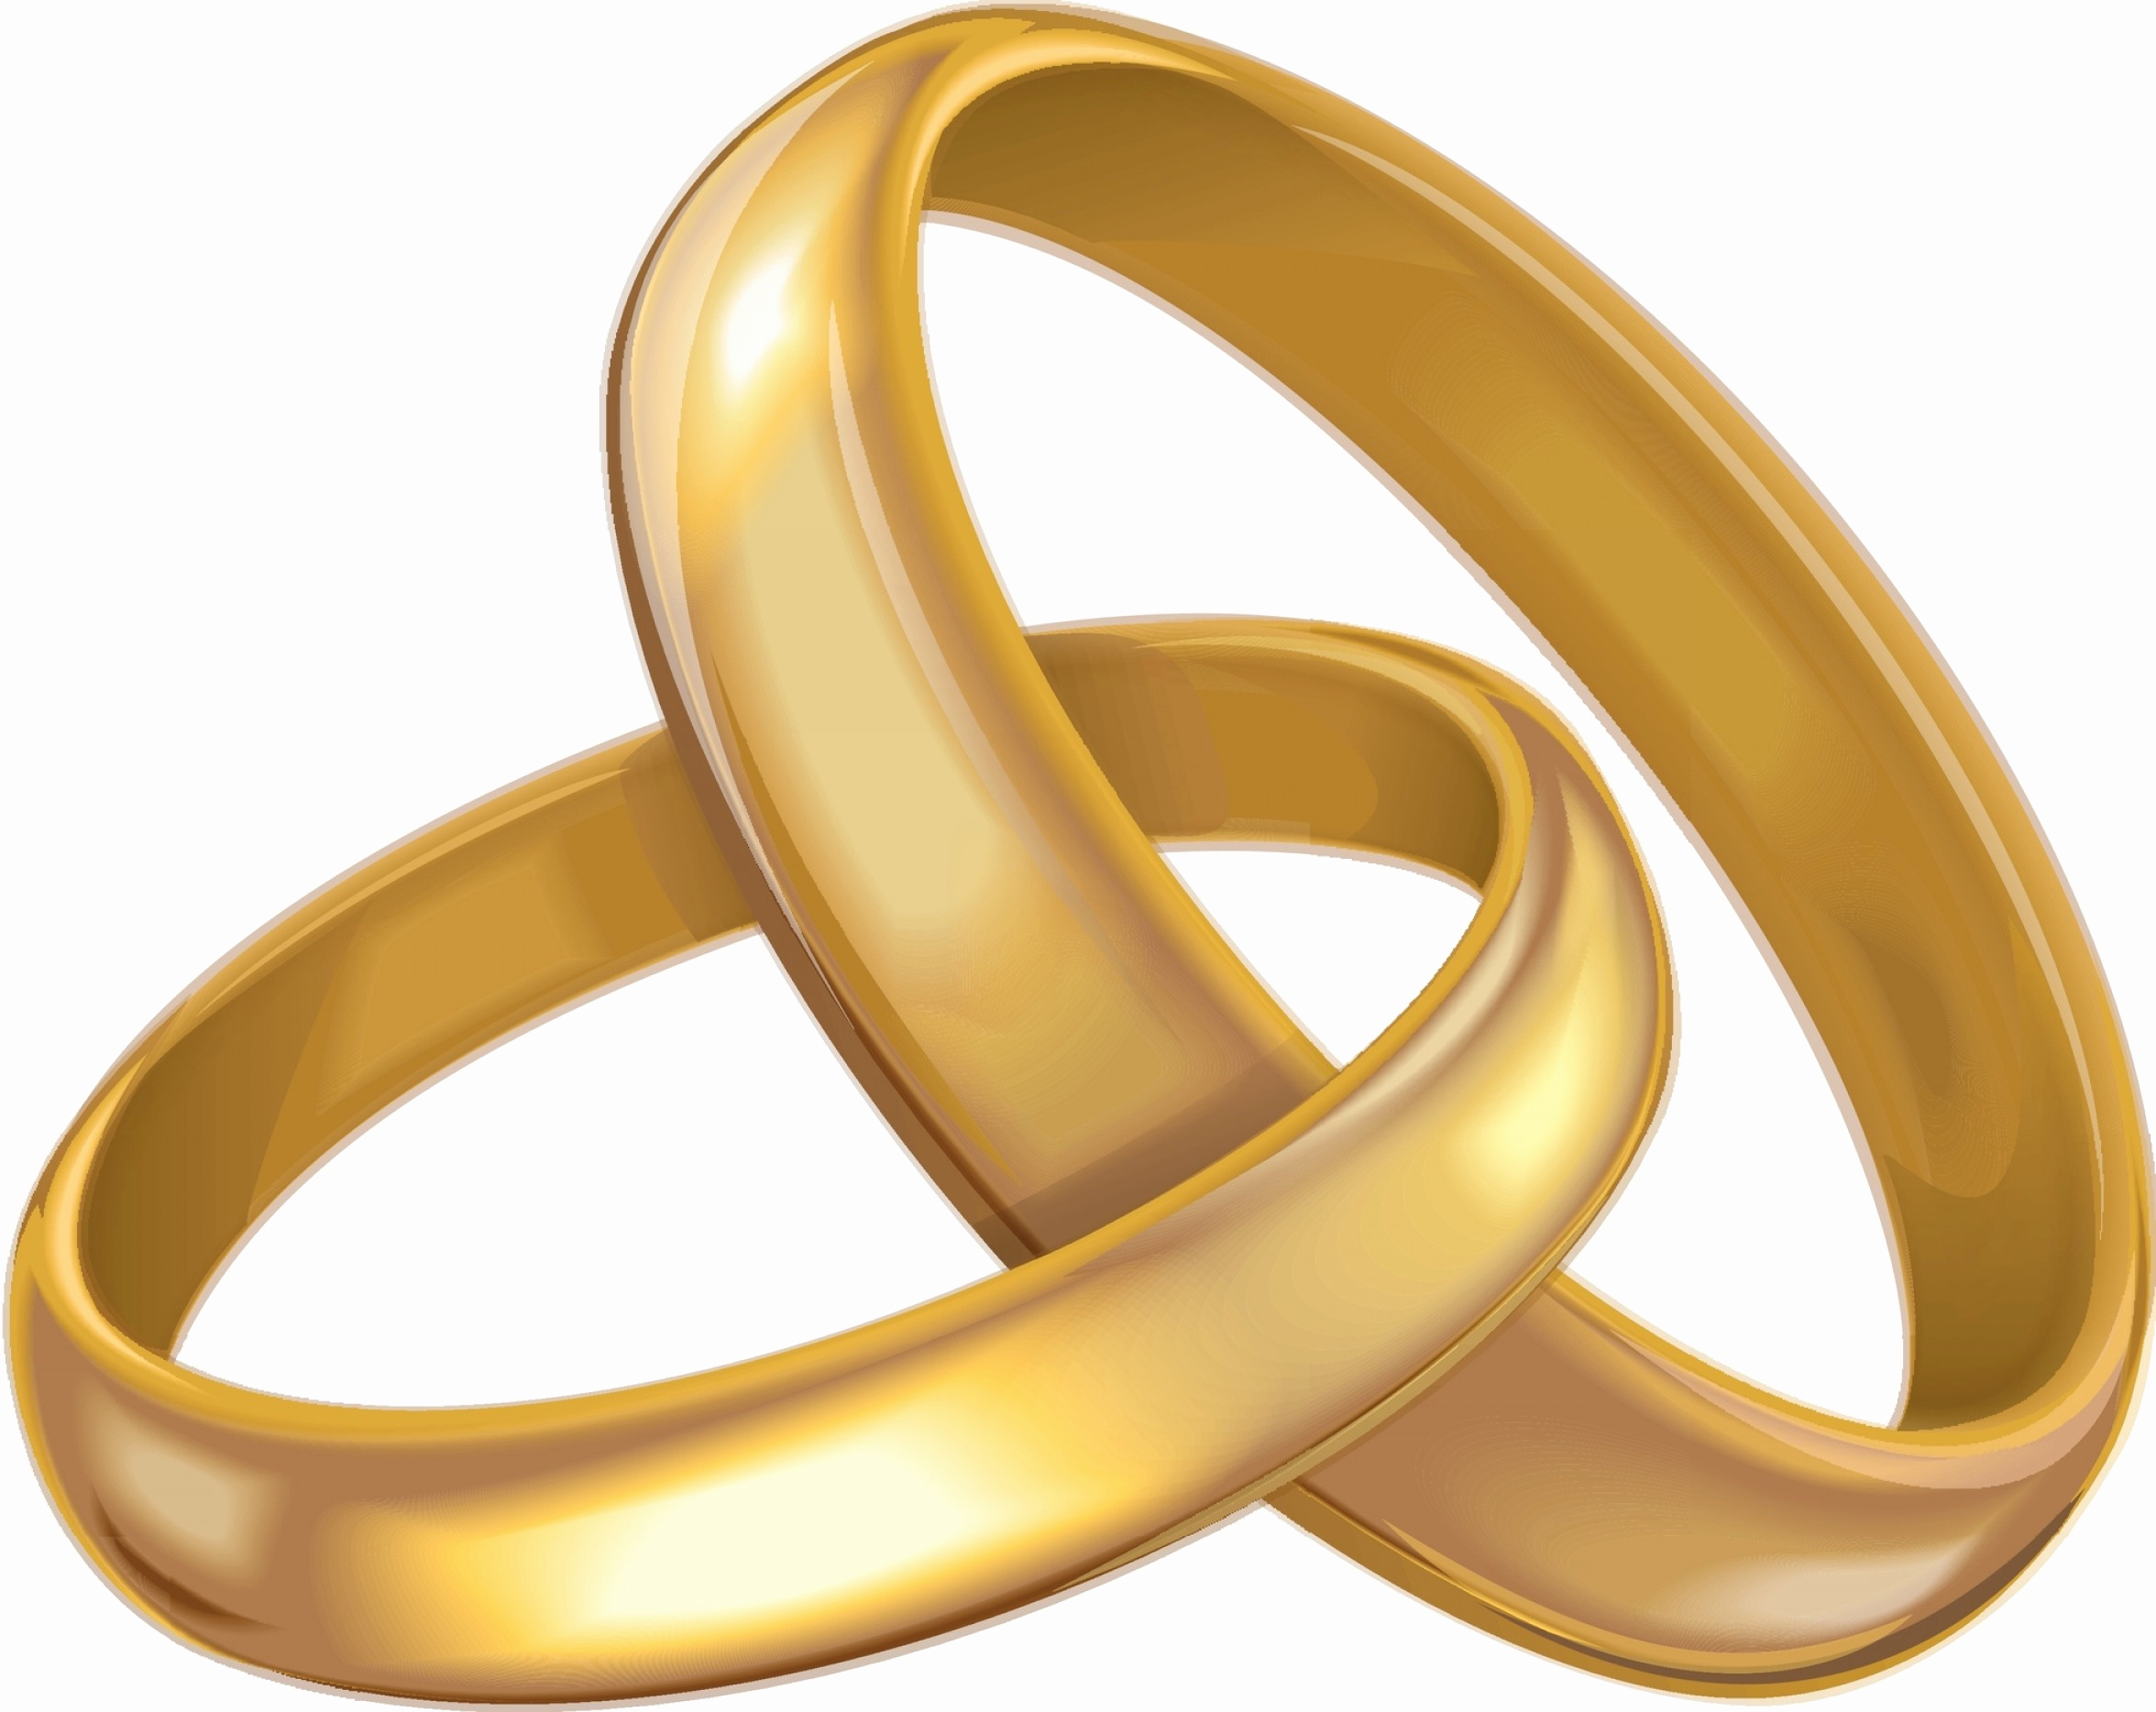 rings golden wallpaper widescreen romantic hd htm gold wedding pair